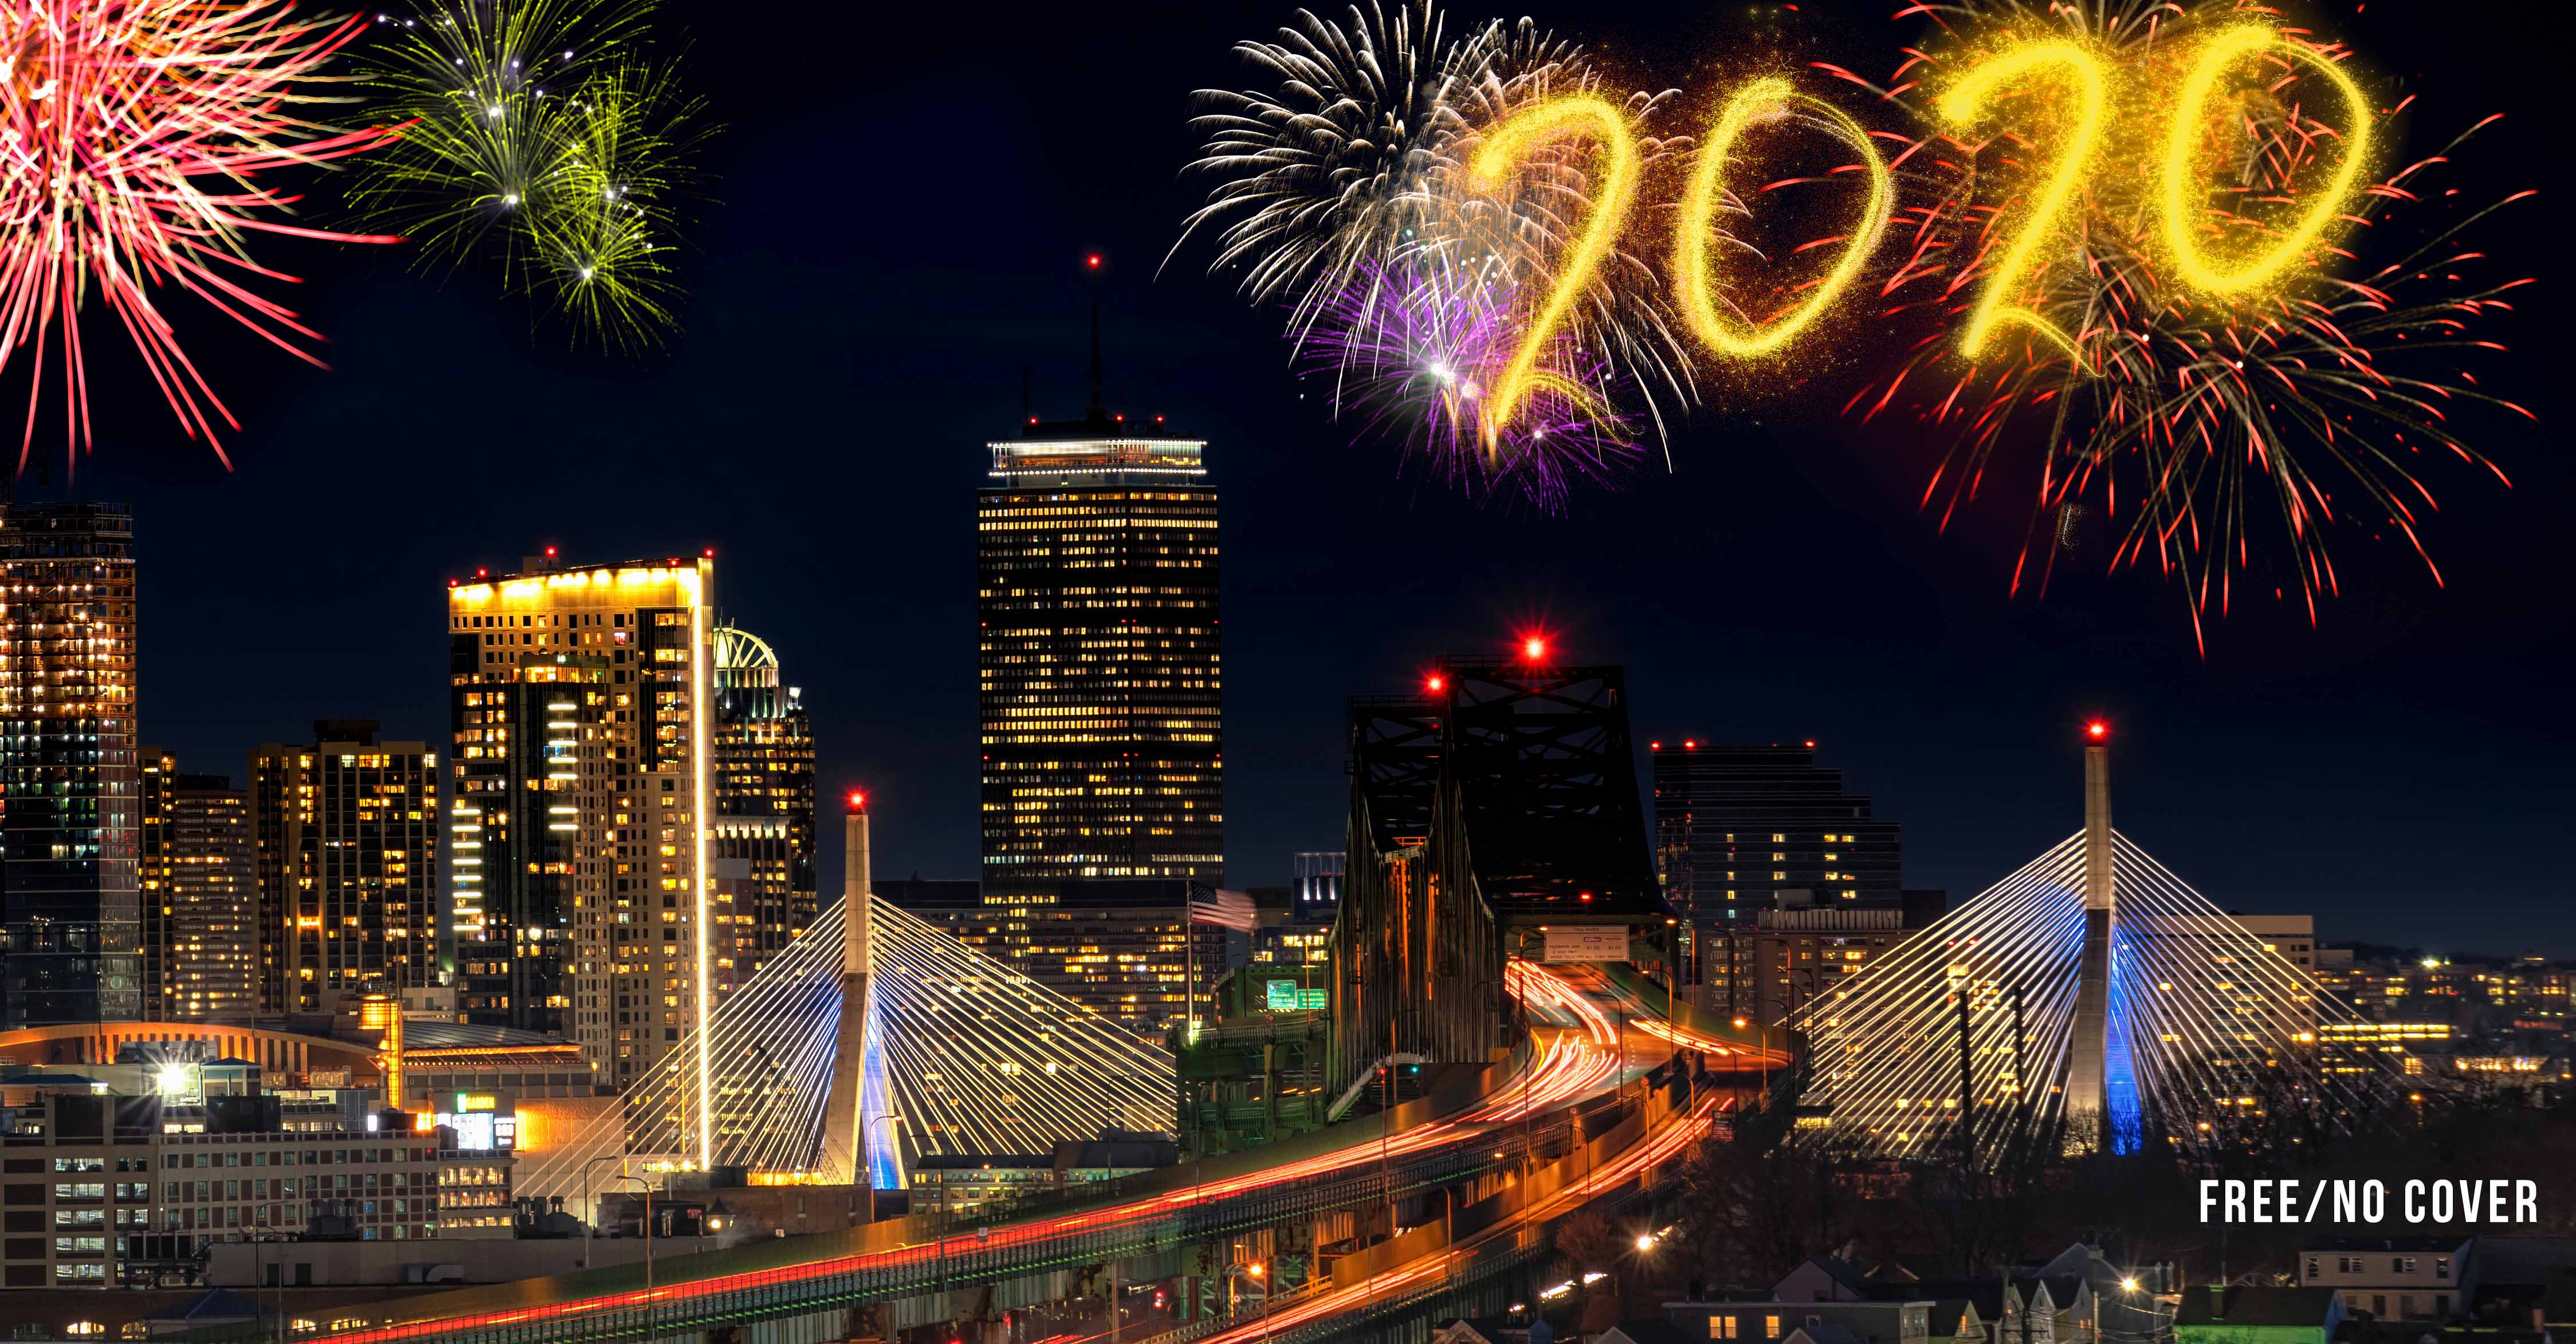 25 FREE things to do in Boston on New Year's Eve 12/31/19